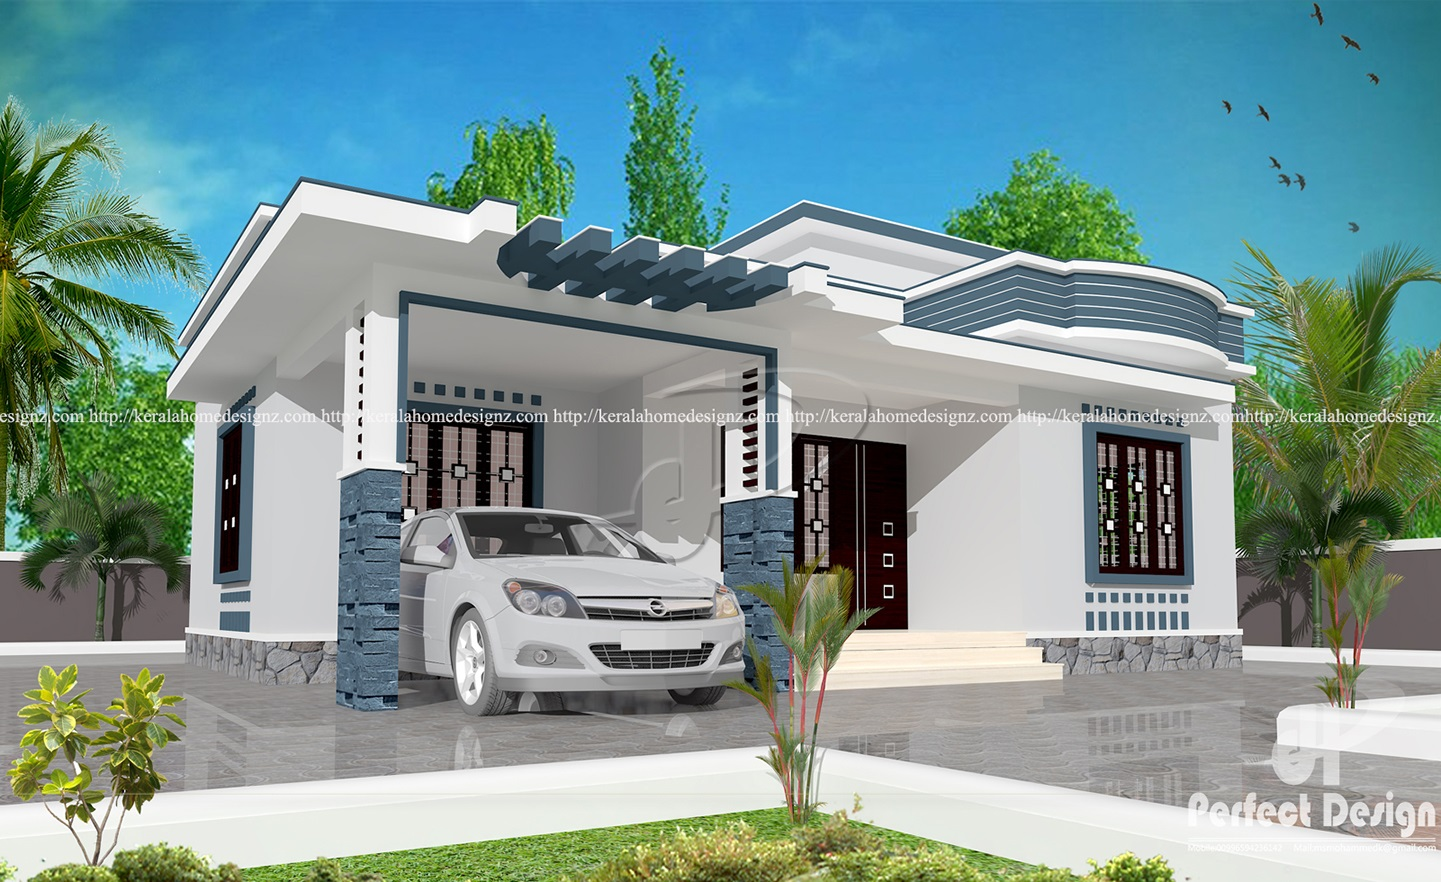 10 lakhs cost estimated modern home kerala home design for Home design website free